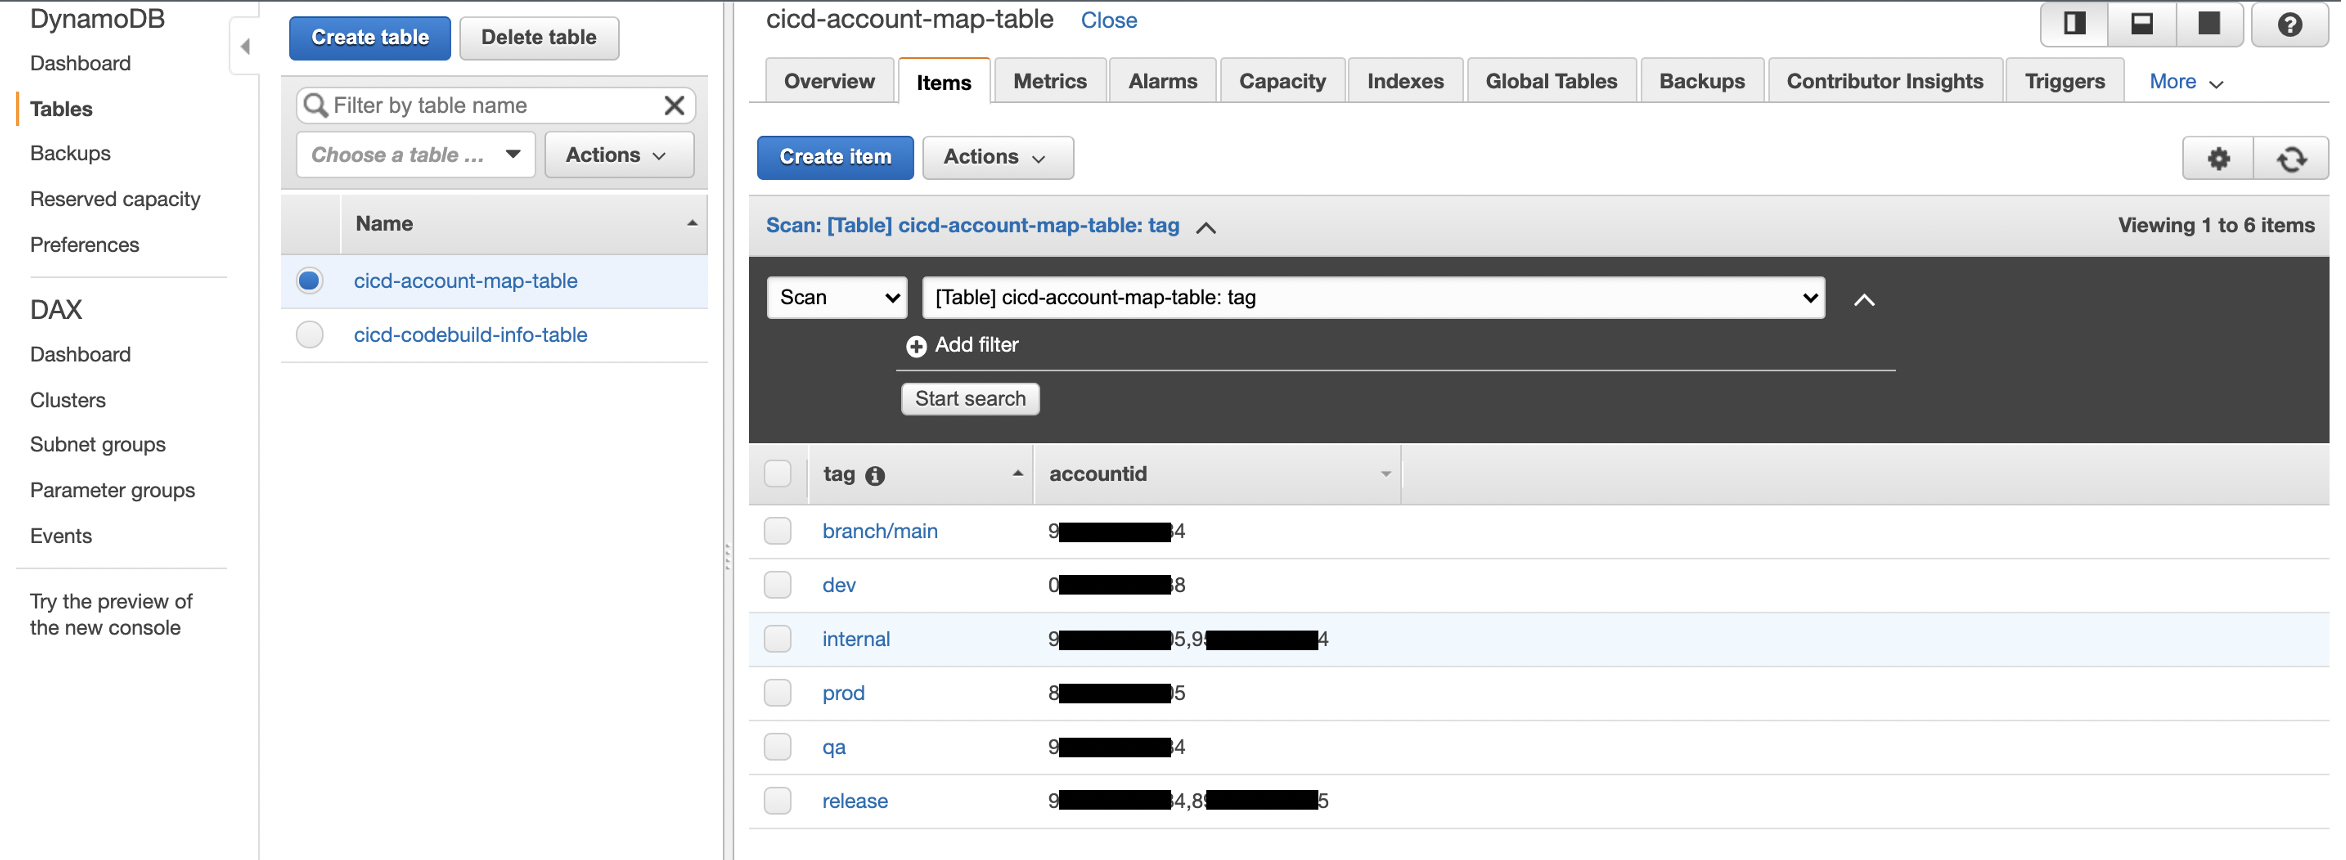 cicd-account-map-table